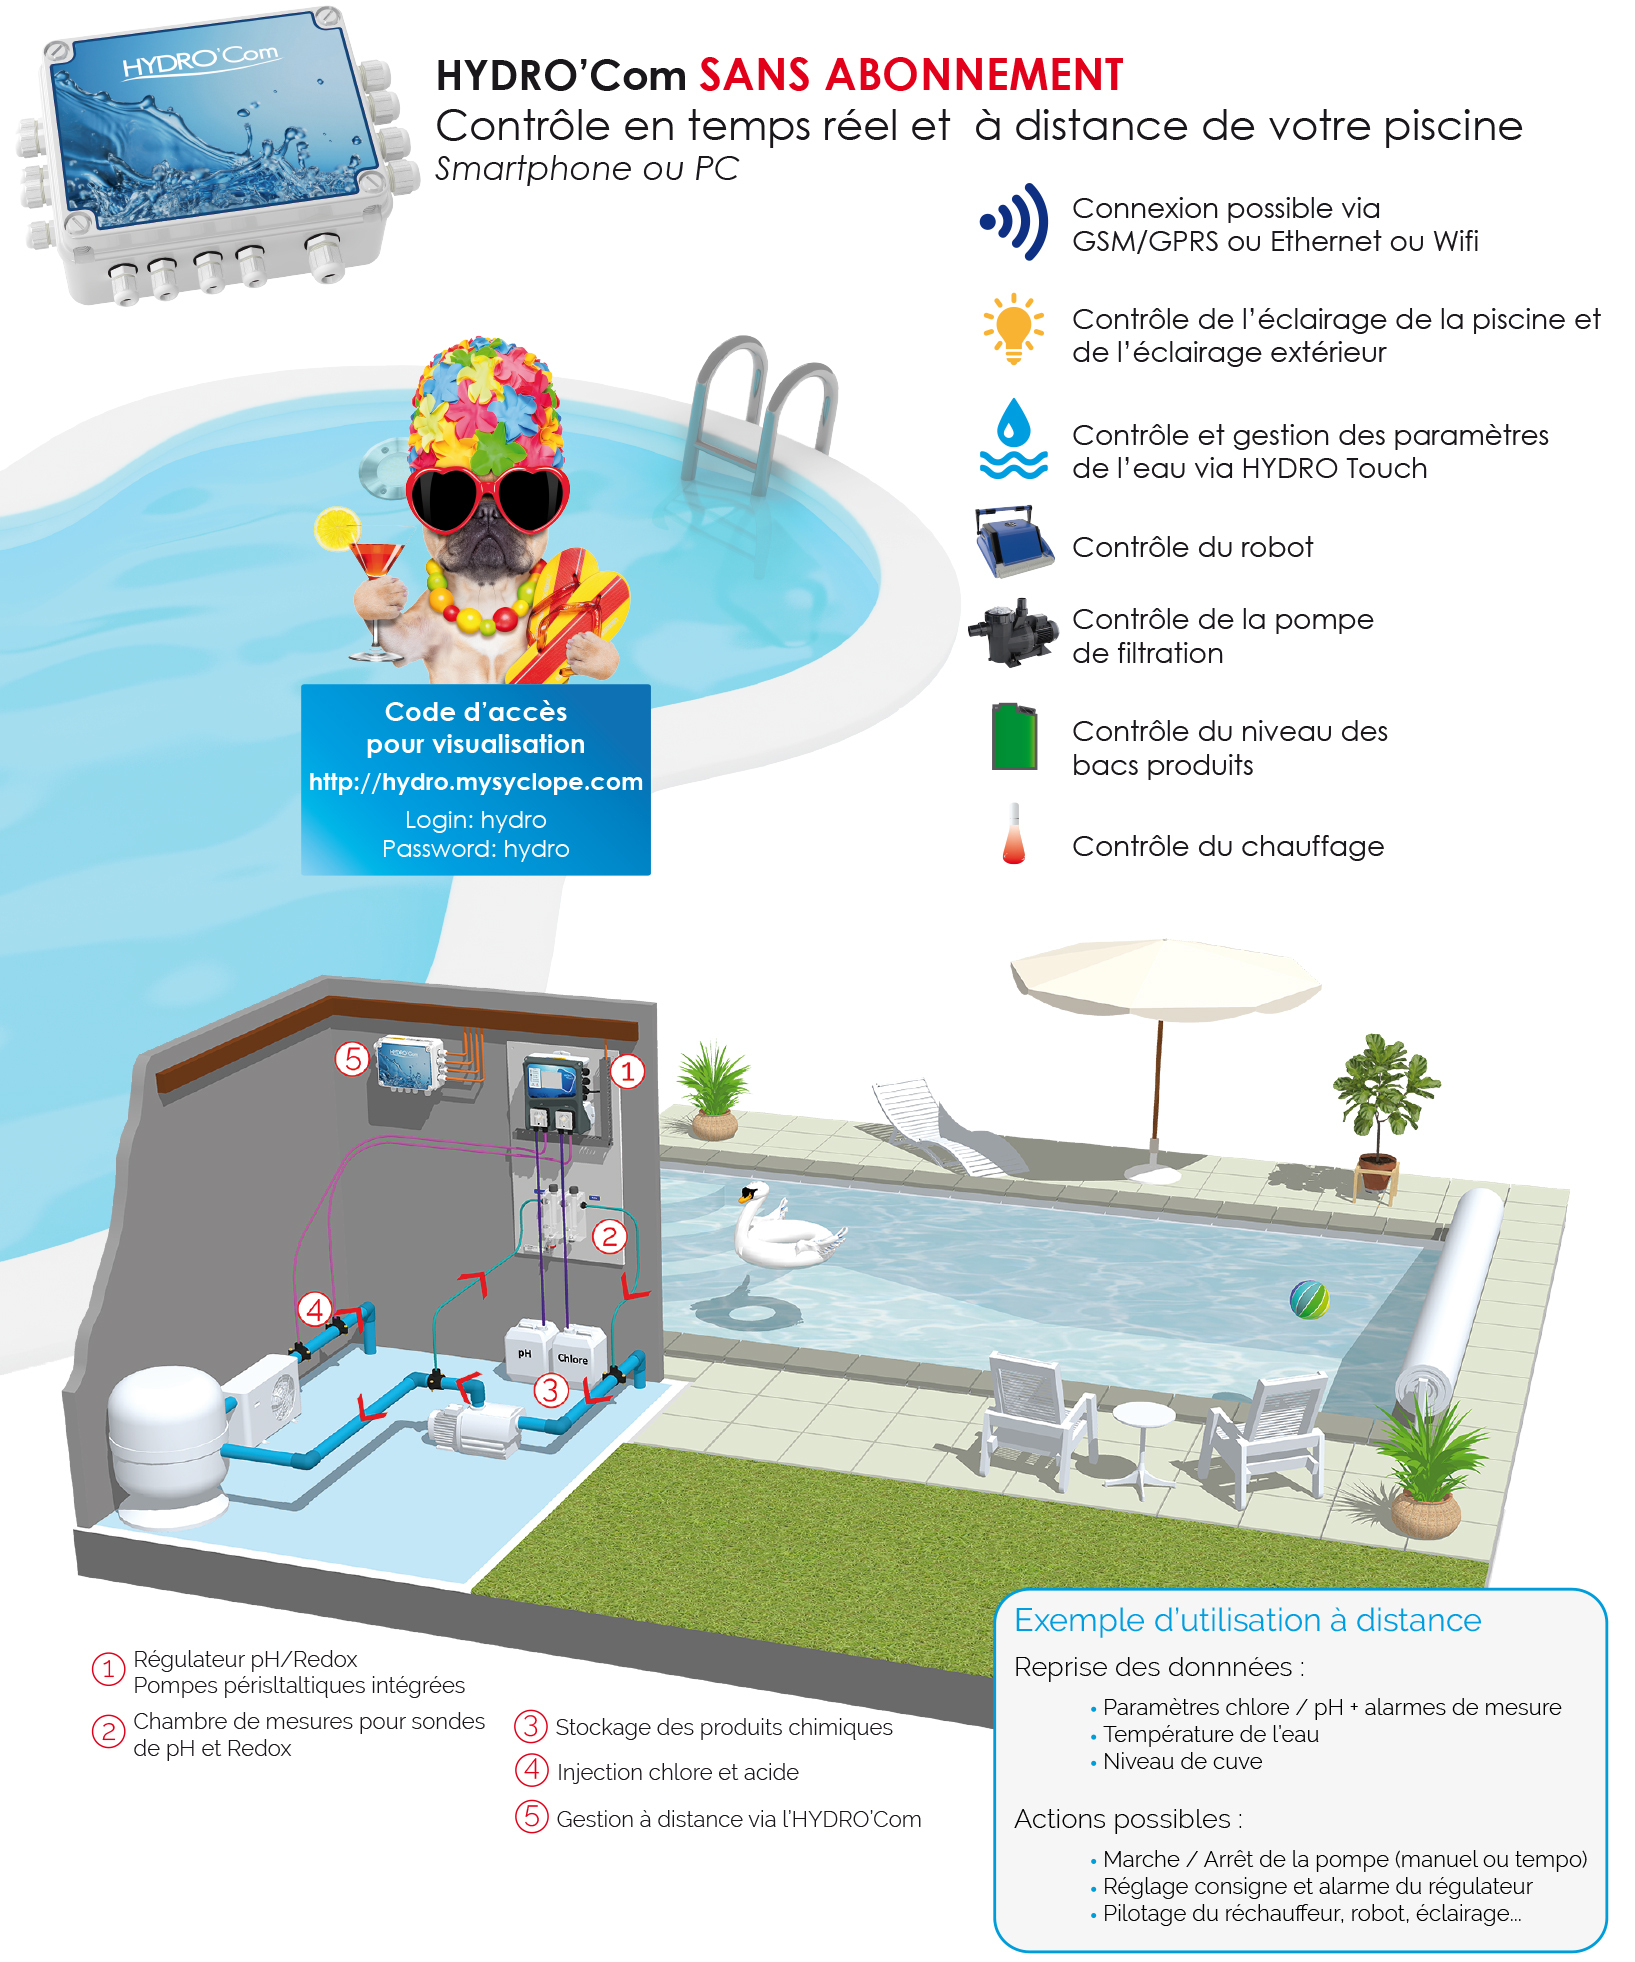 Hydro Touch : Water Quality For Private Swimming Pools tout Hydro Touch Syclope